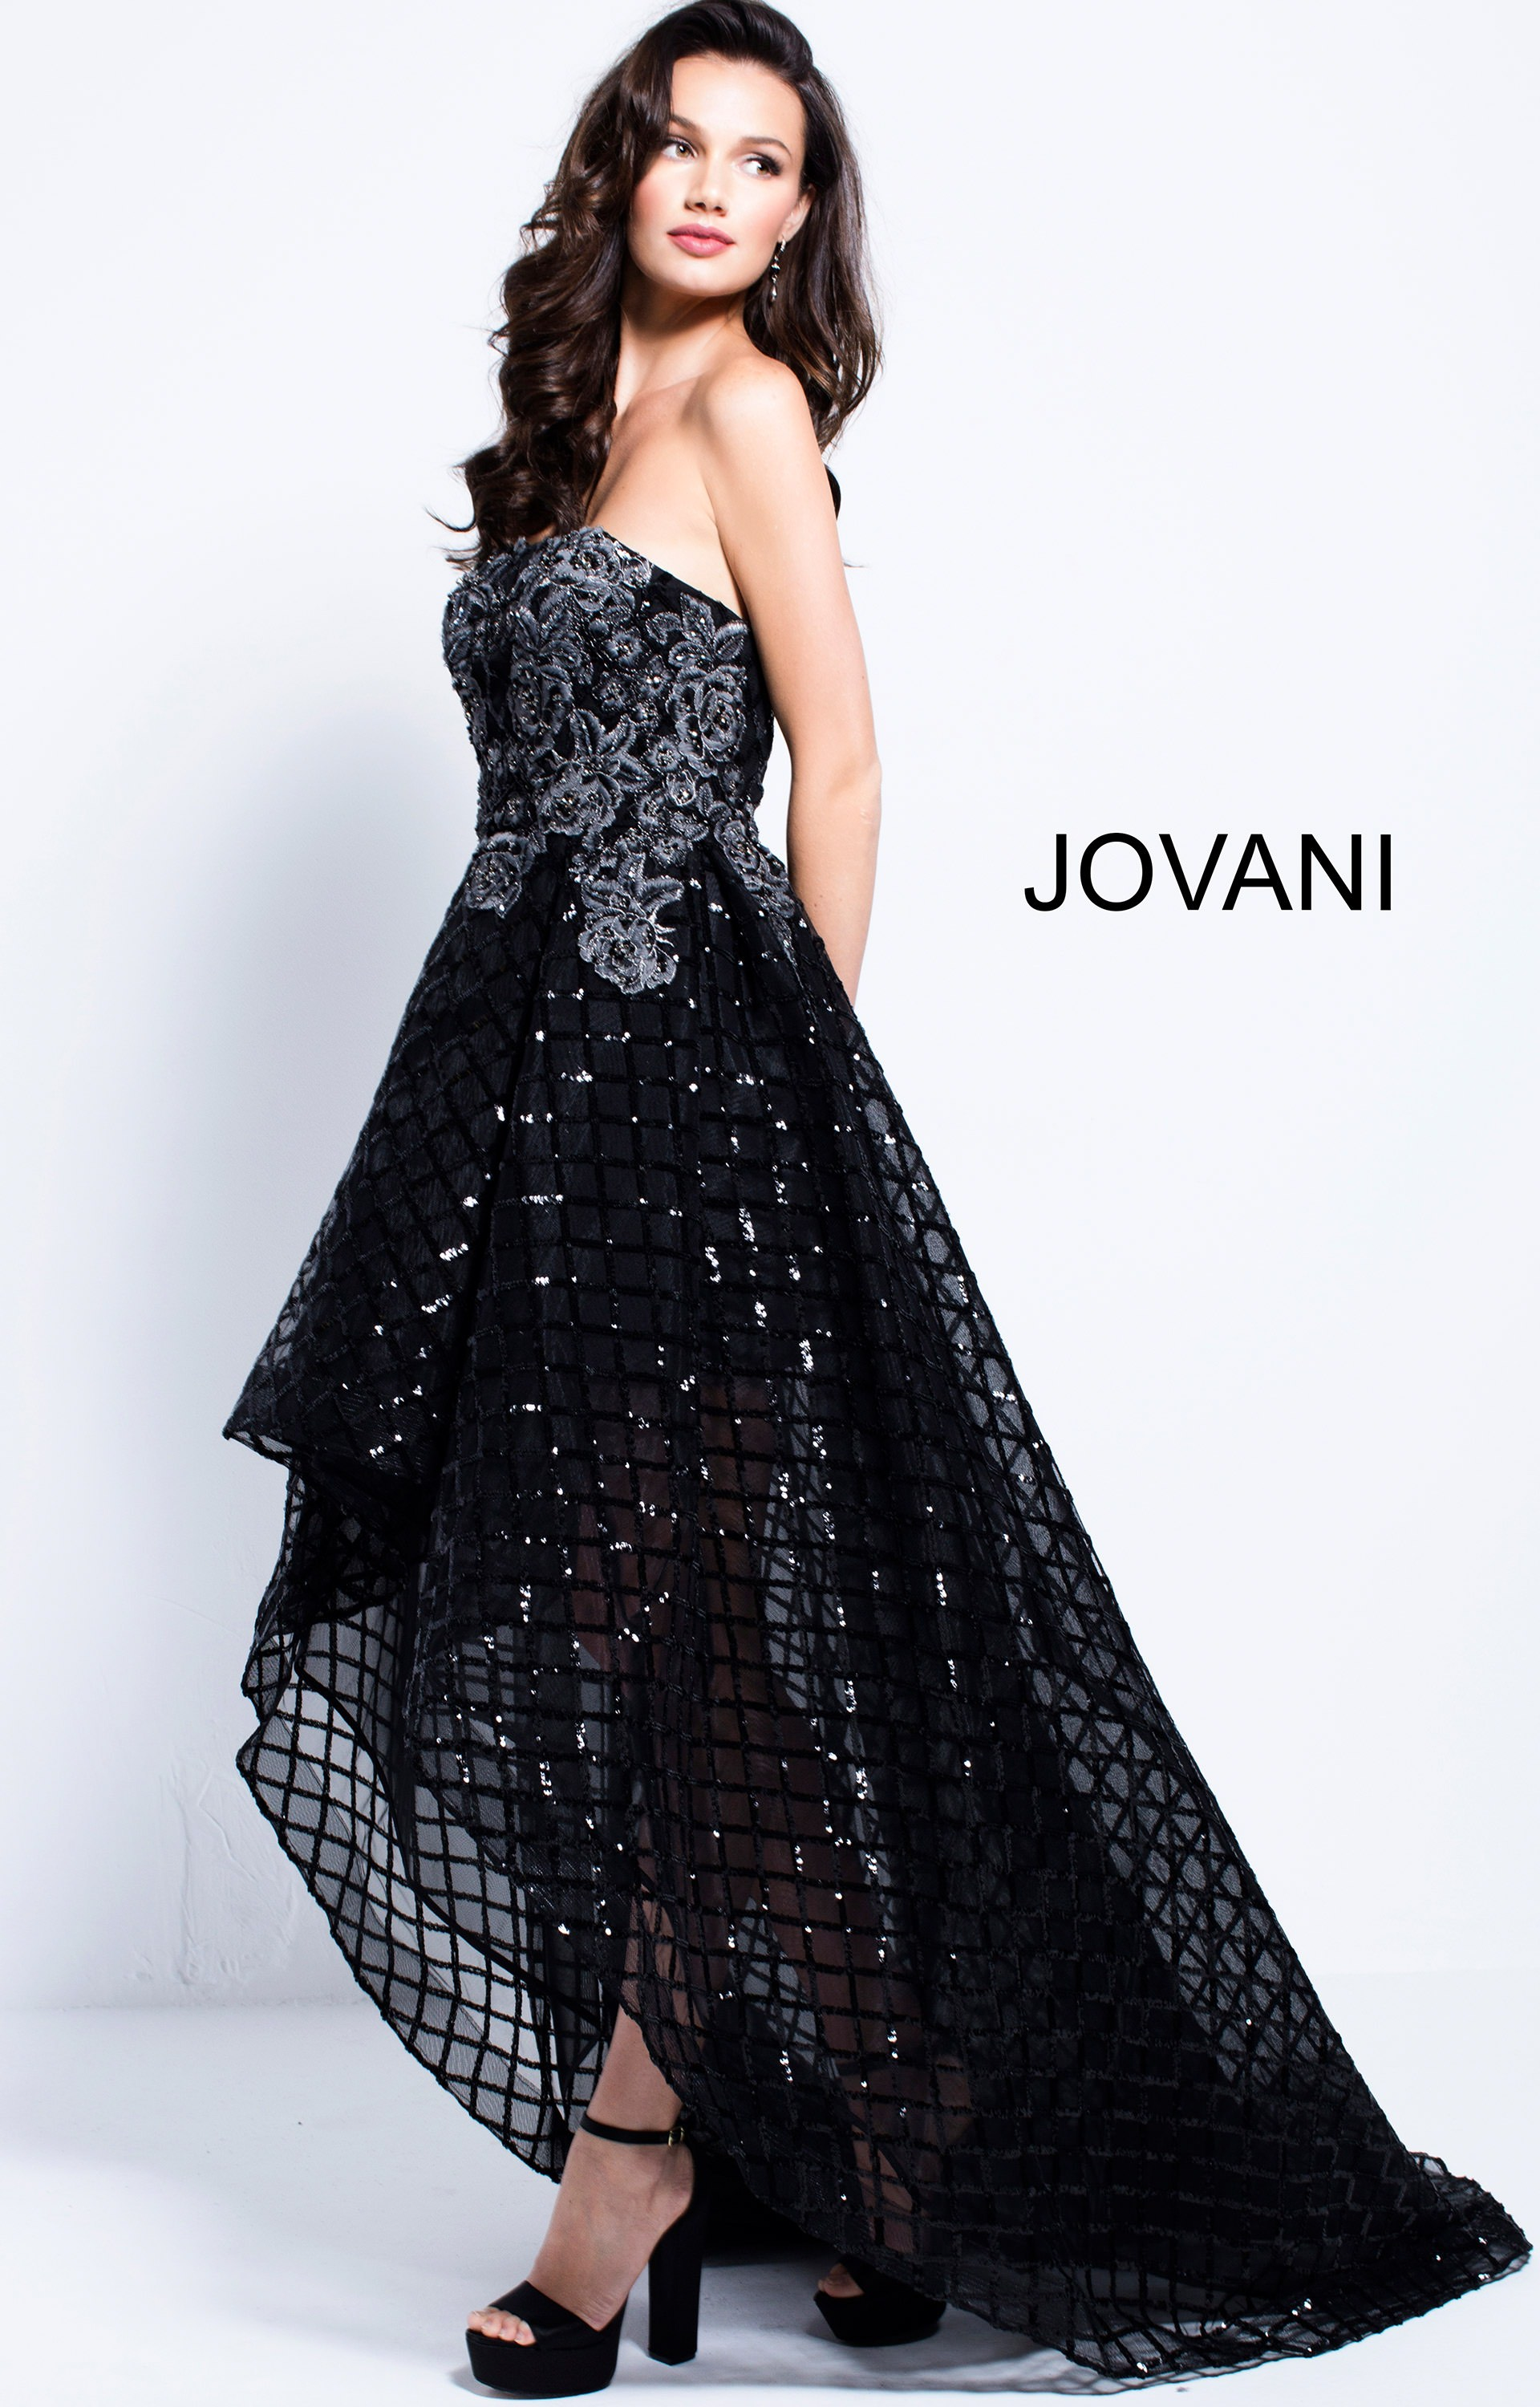 Jovani 55733 - Tulle High Low Floral Sequin Prom Dress